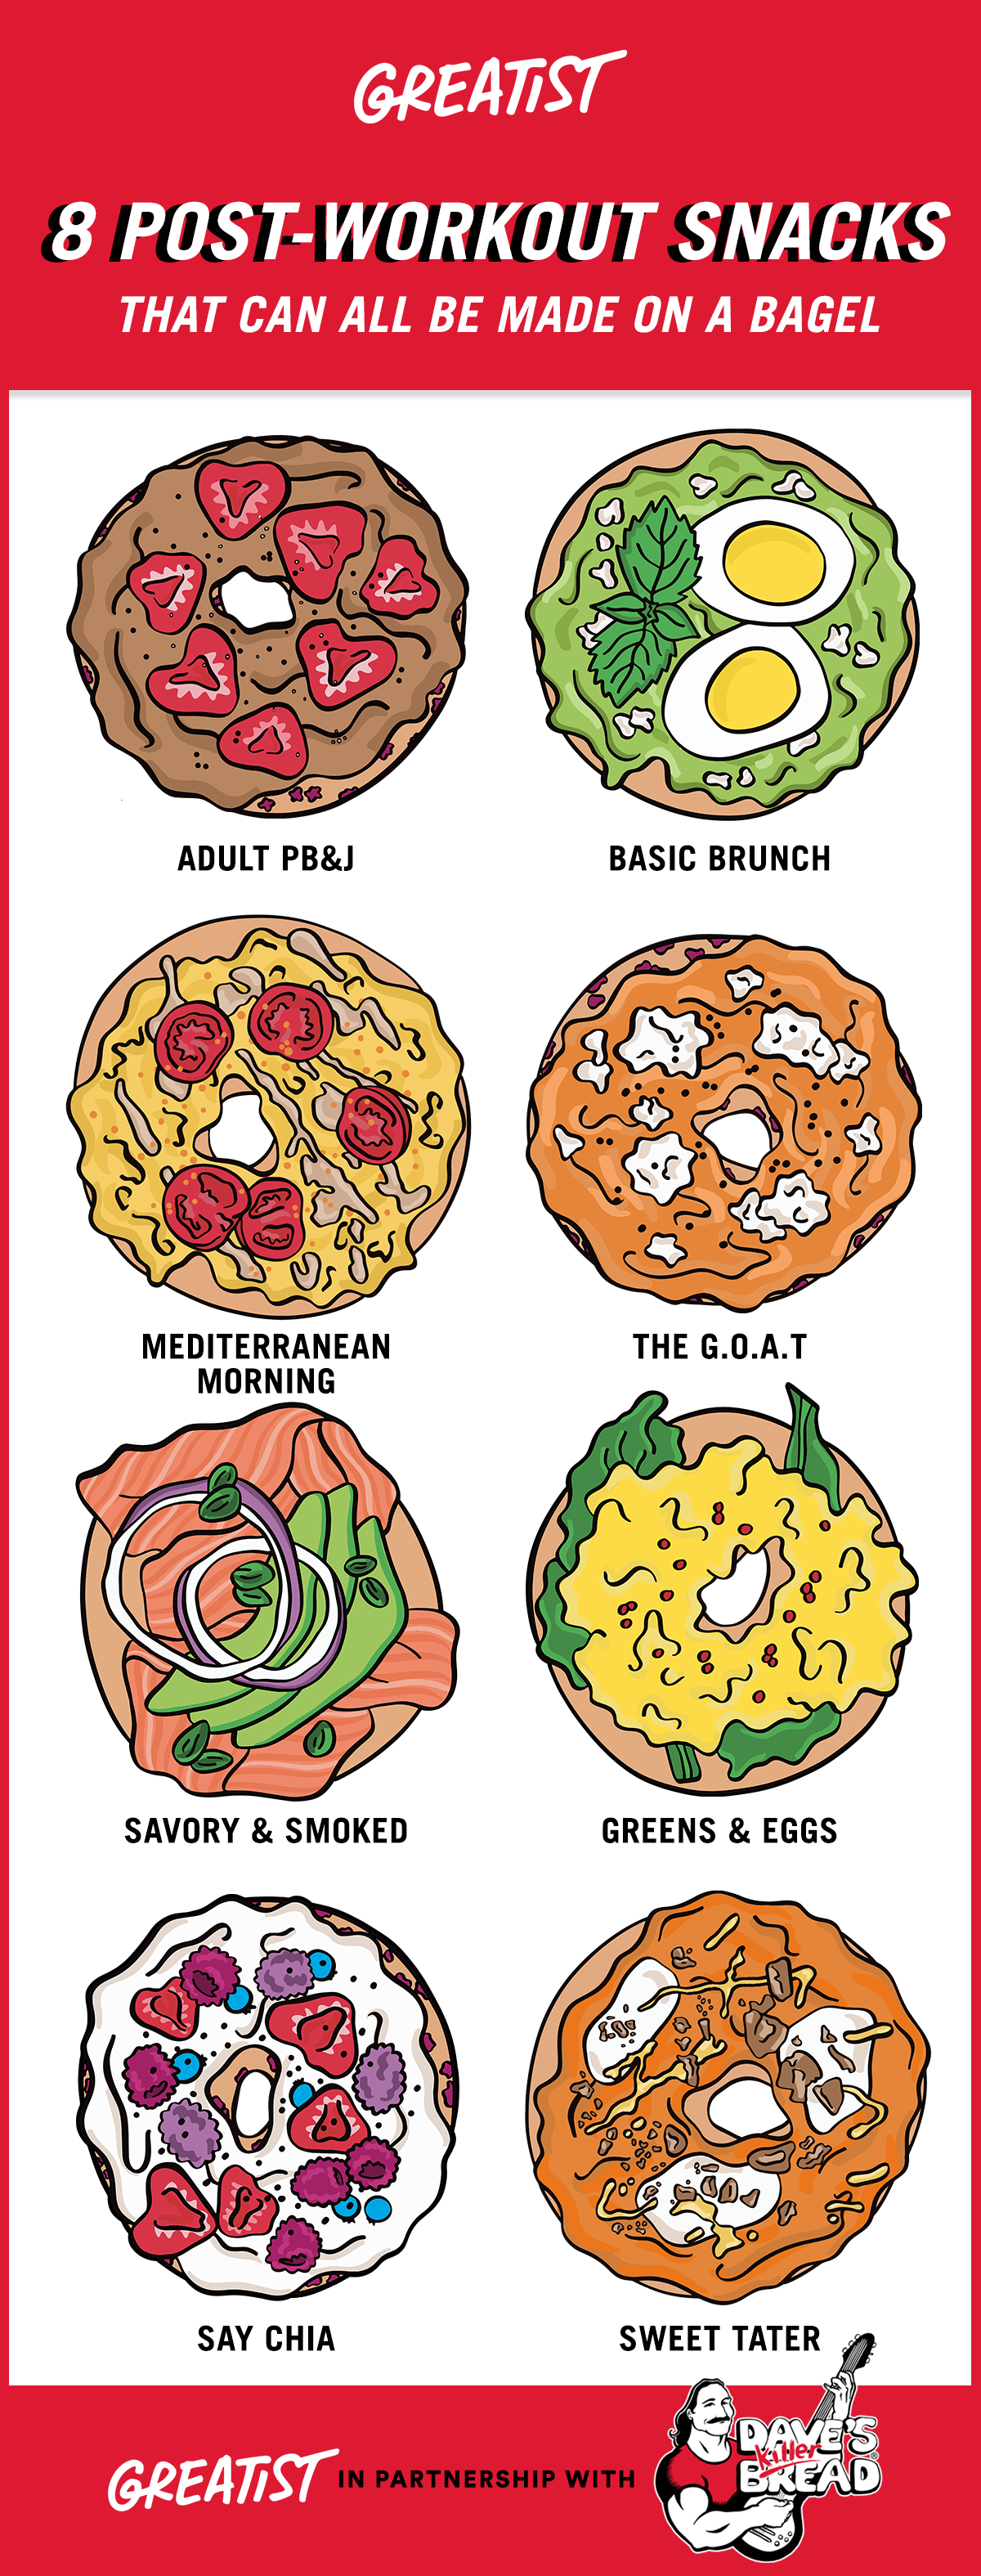 8 Post-Workout Snacks That Can All Be Made on a Bagel